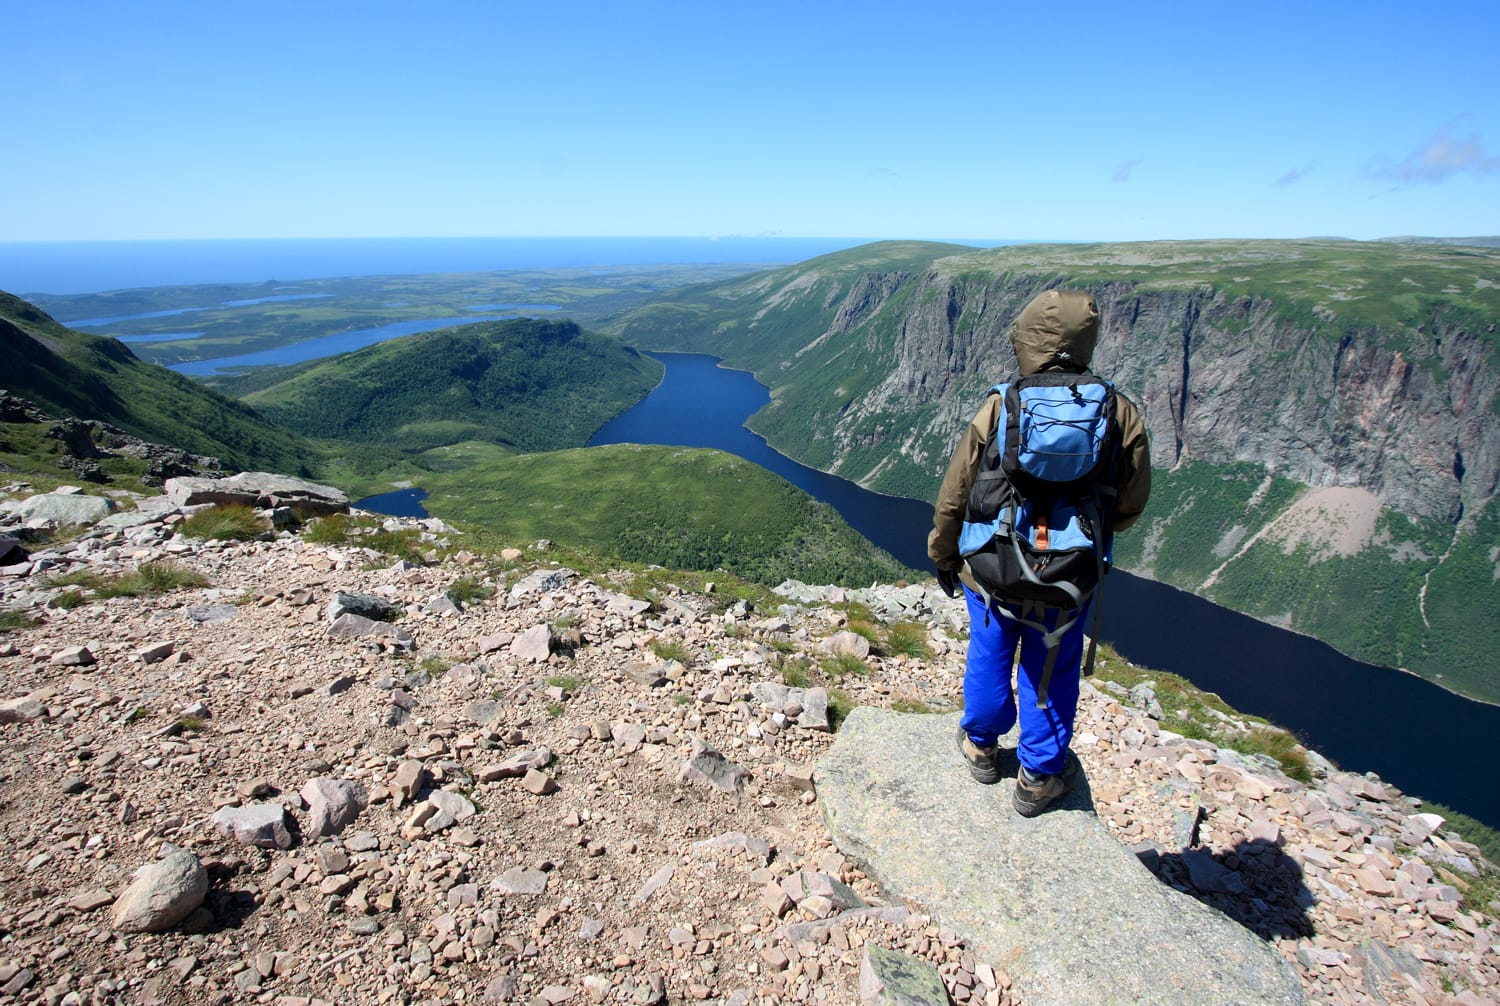 A female hiker standing on Gros Morne Mountain above Ten Mile Pond in Gros Morne National Park, Newfoundland, Canada.